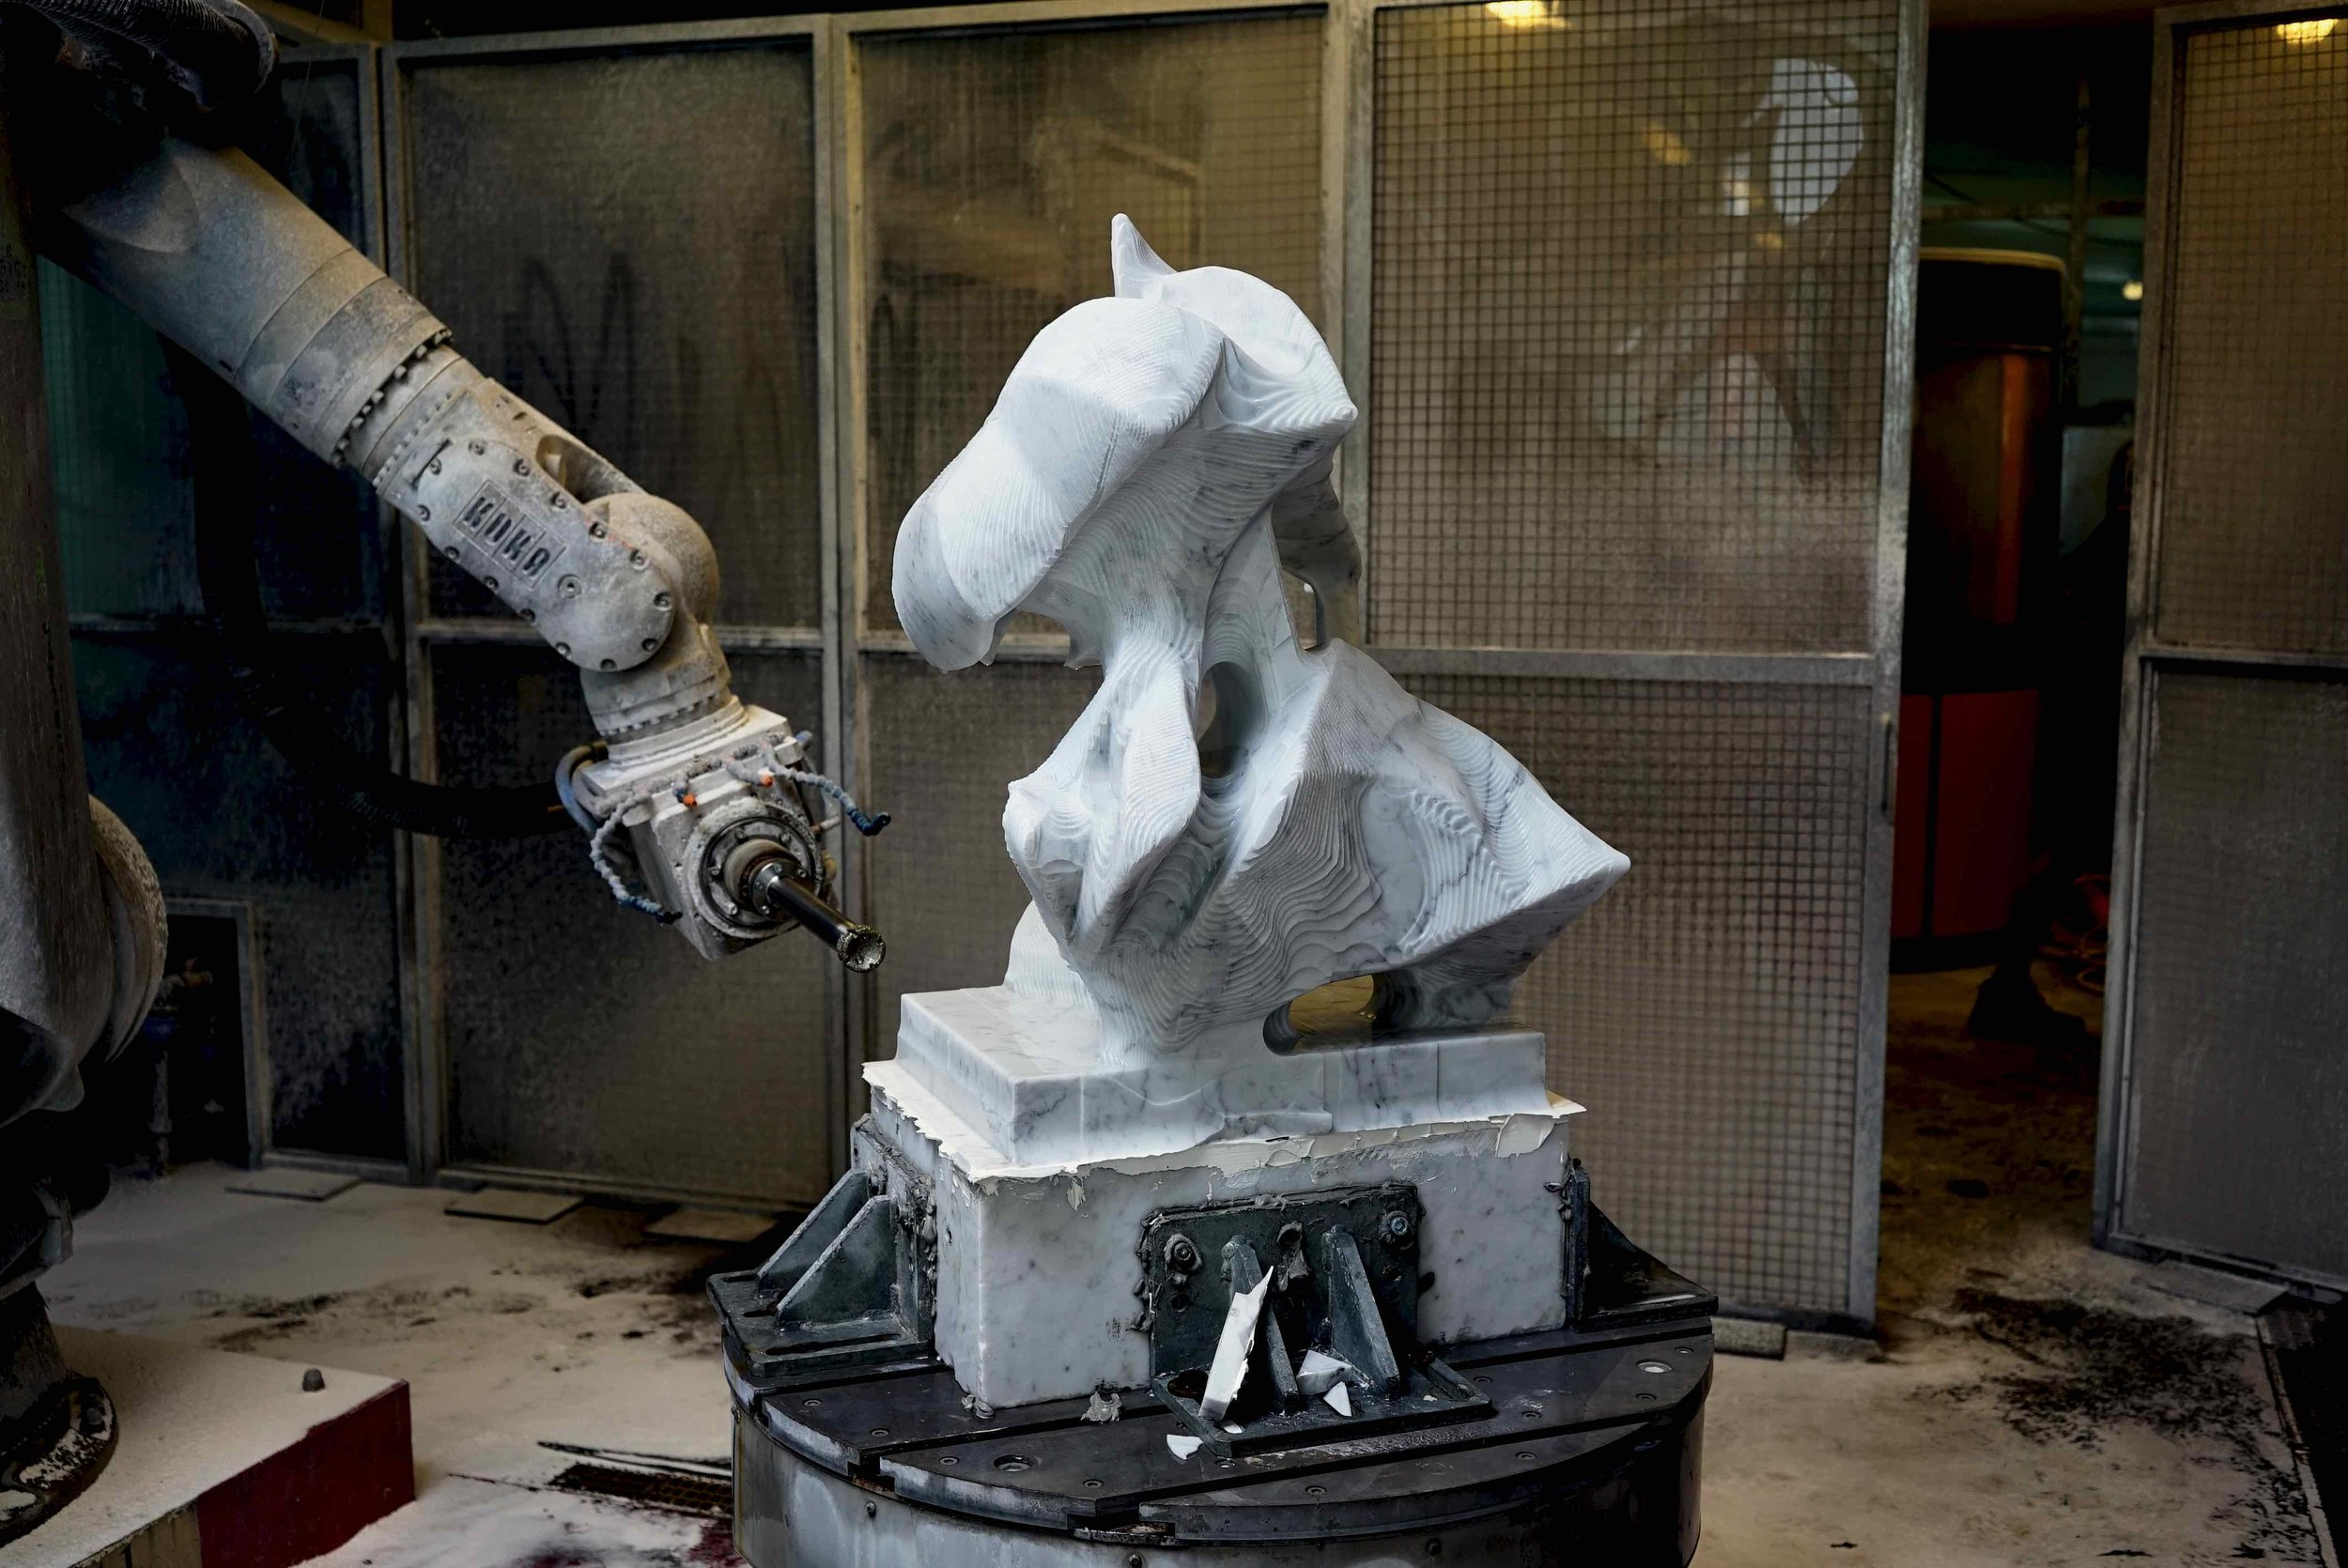 Work in progress…. Wout Neutkens' Flower made in marble.